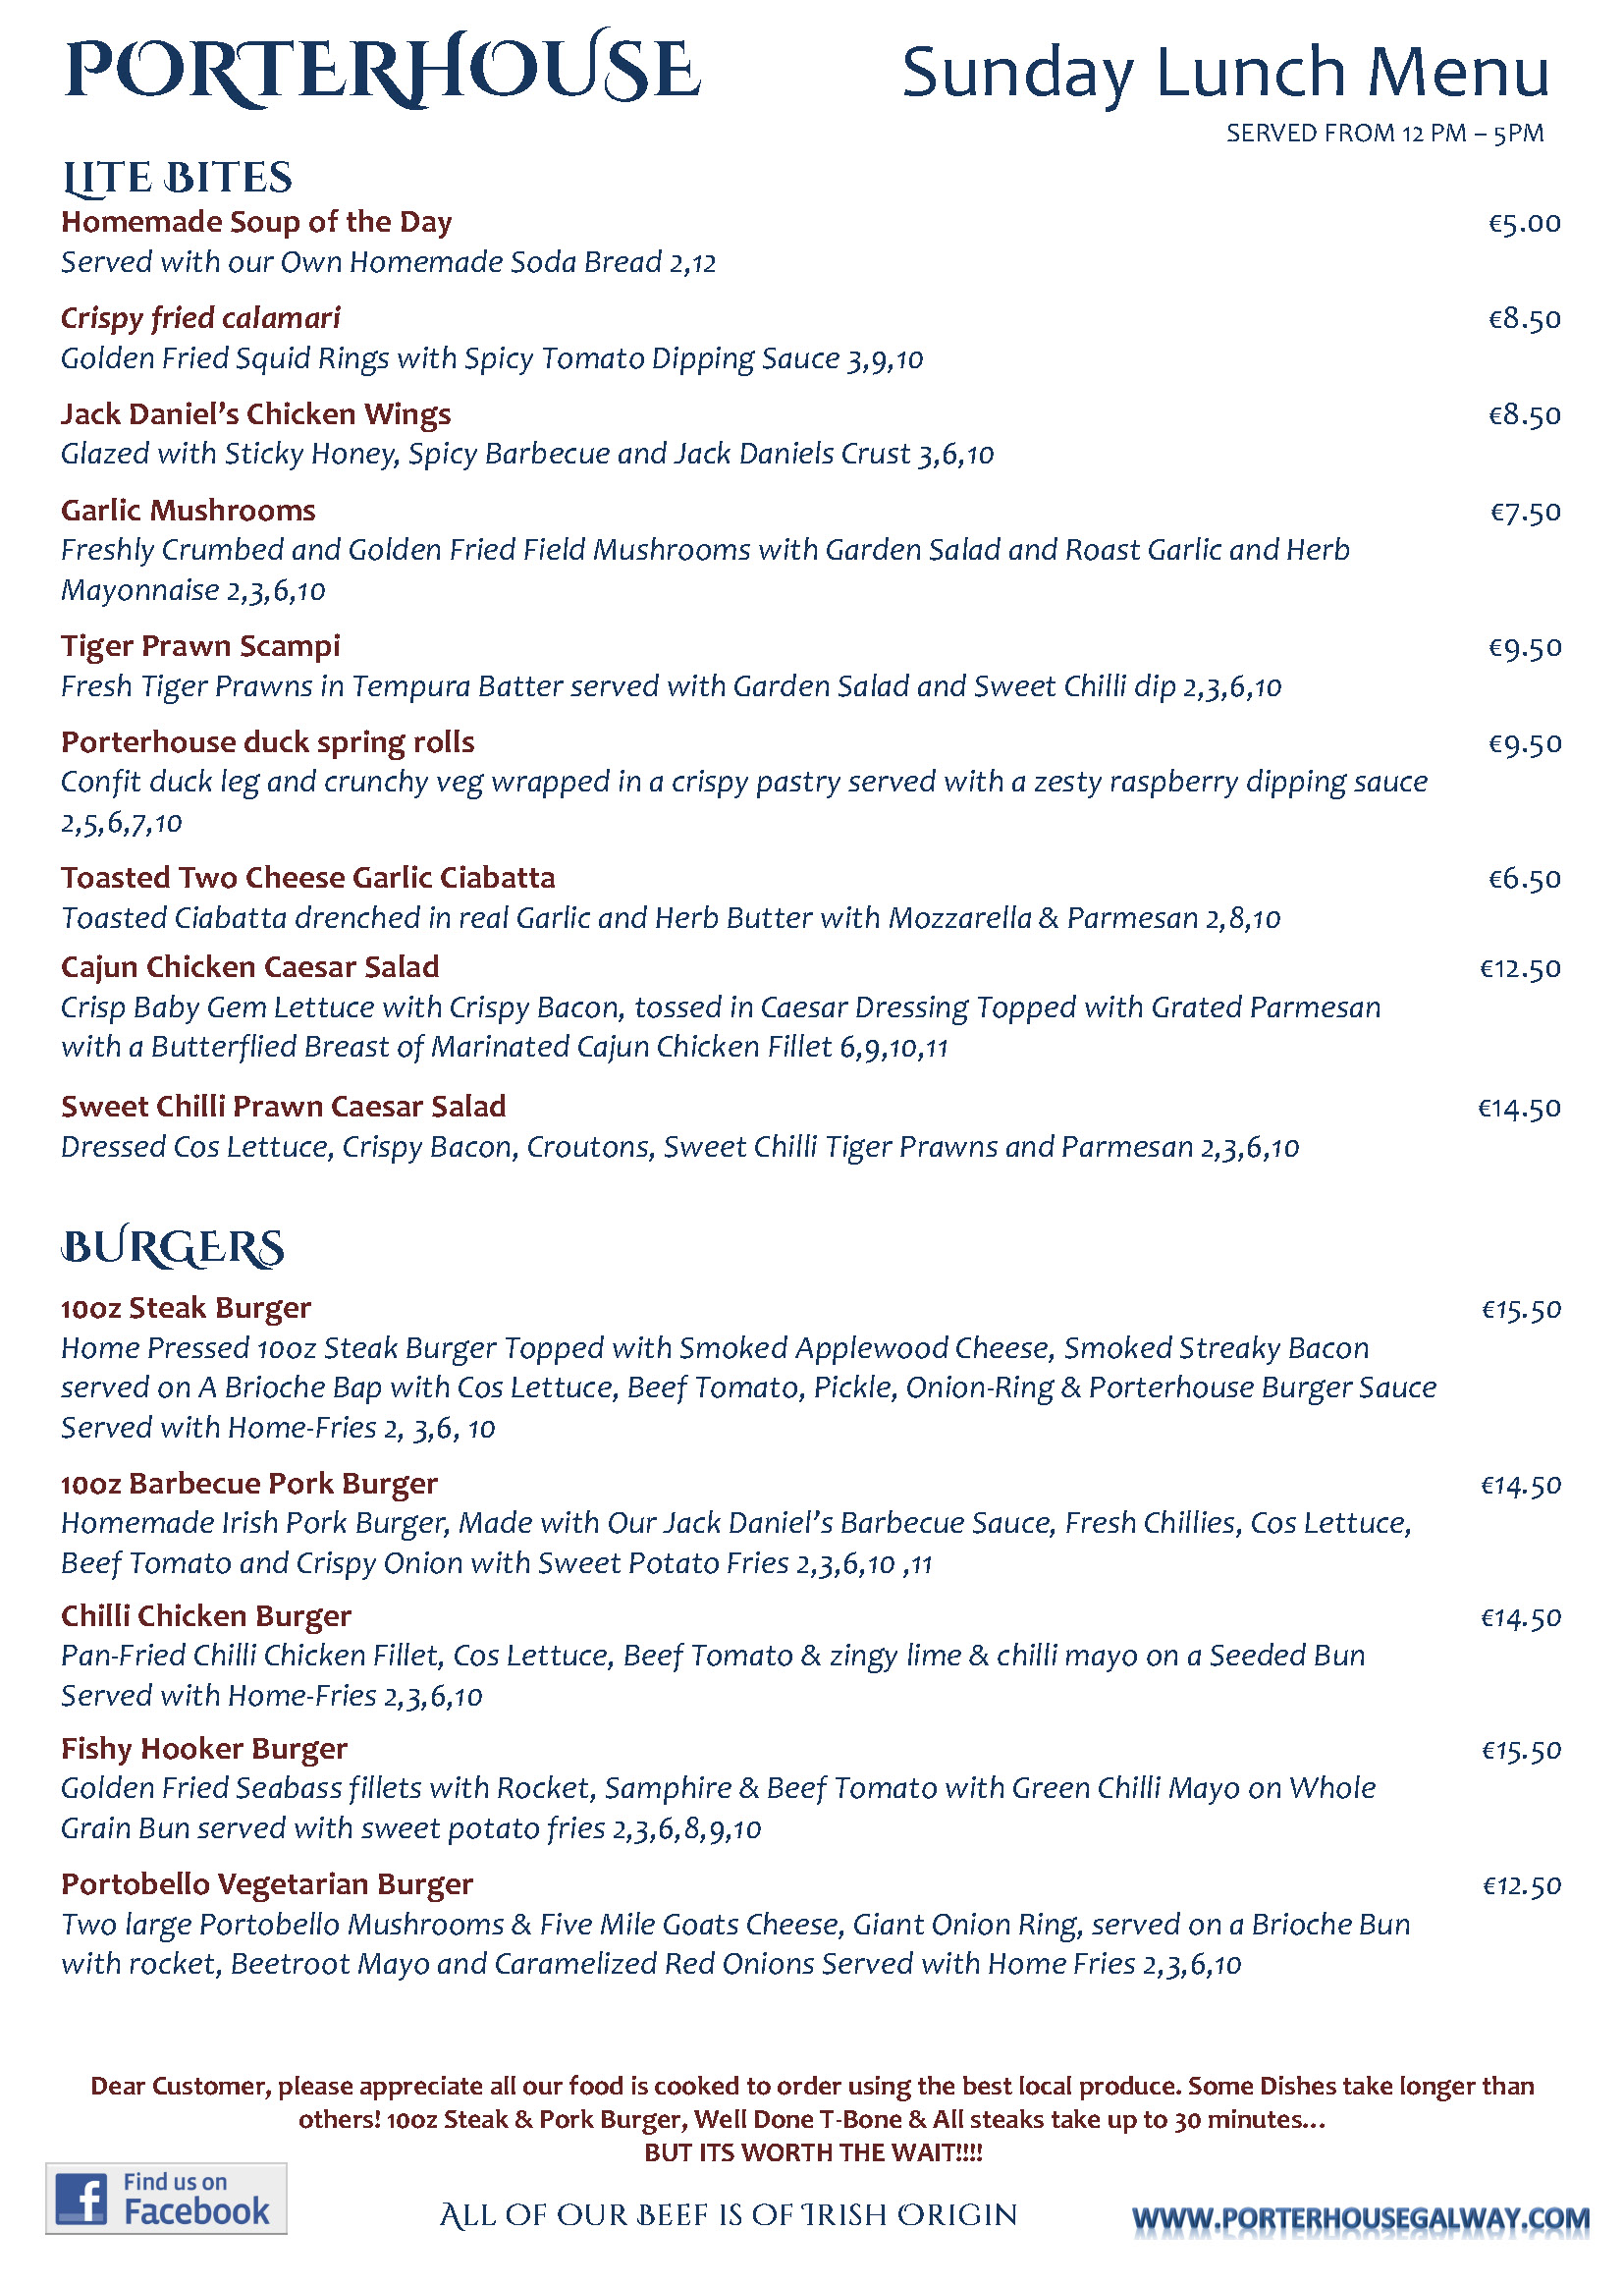 Porterhouse Galway - SundayLunch Menu - Final 19.07.2018_Page_2.jpg